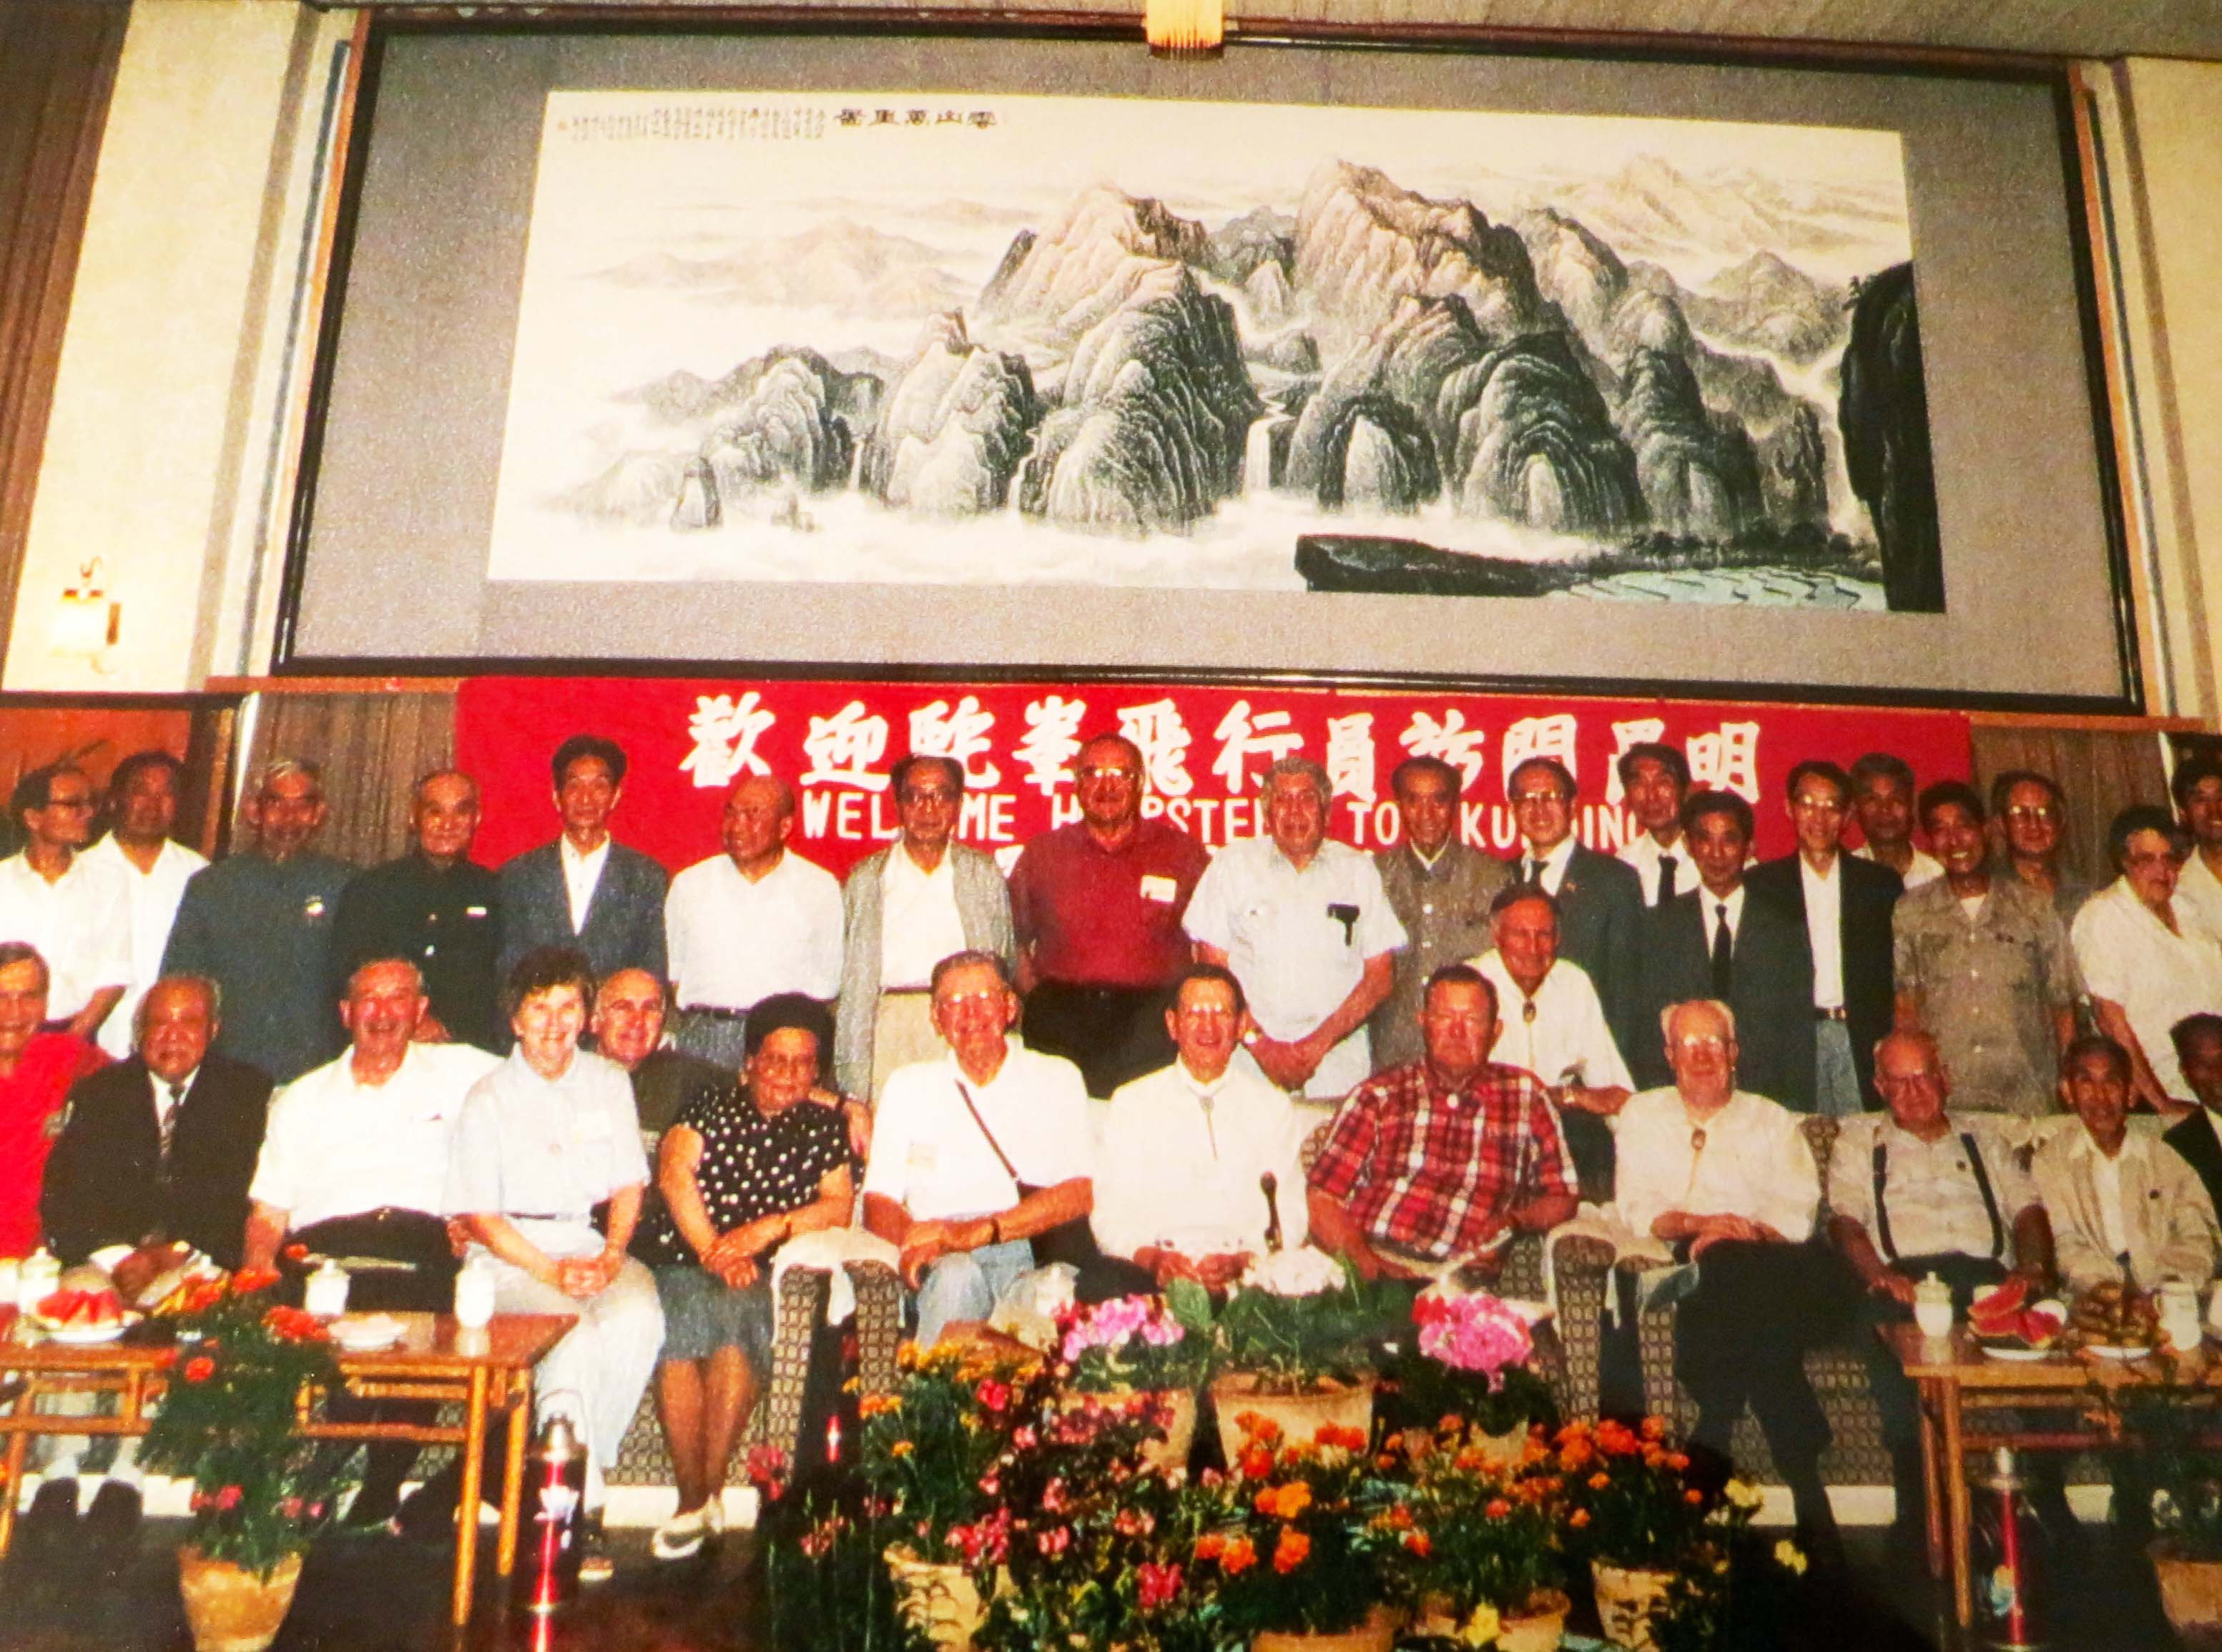 Hump pilots from World War II being honored in China in 1996.